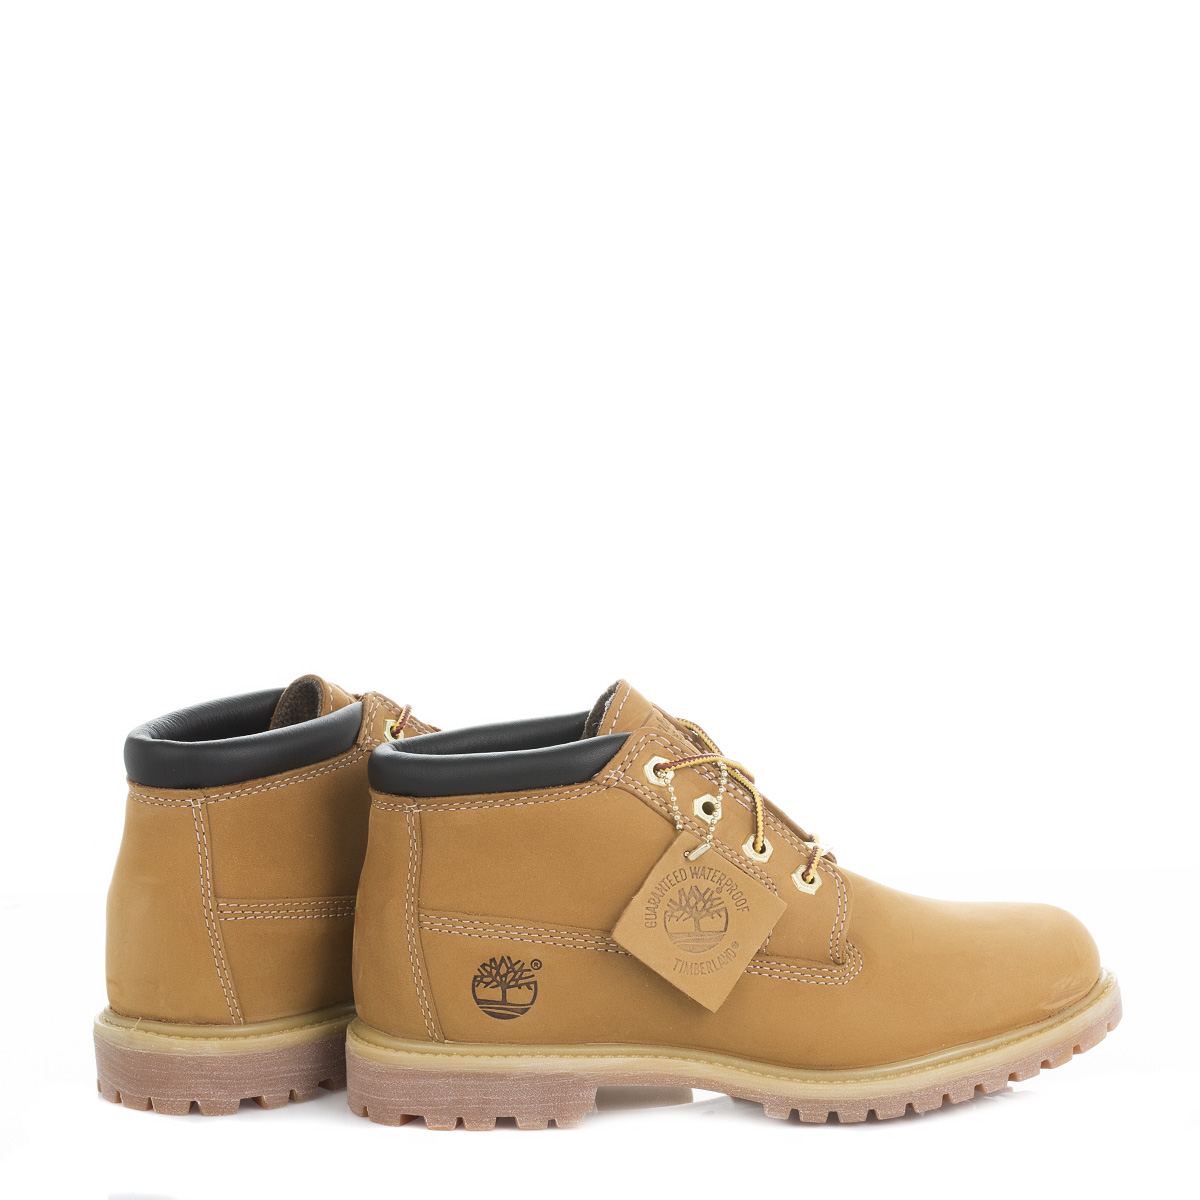 Timberland Womens Ankle Boots Wheat Beige Nellie Nubuck